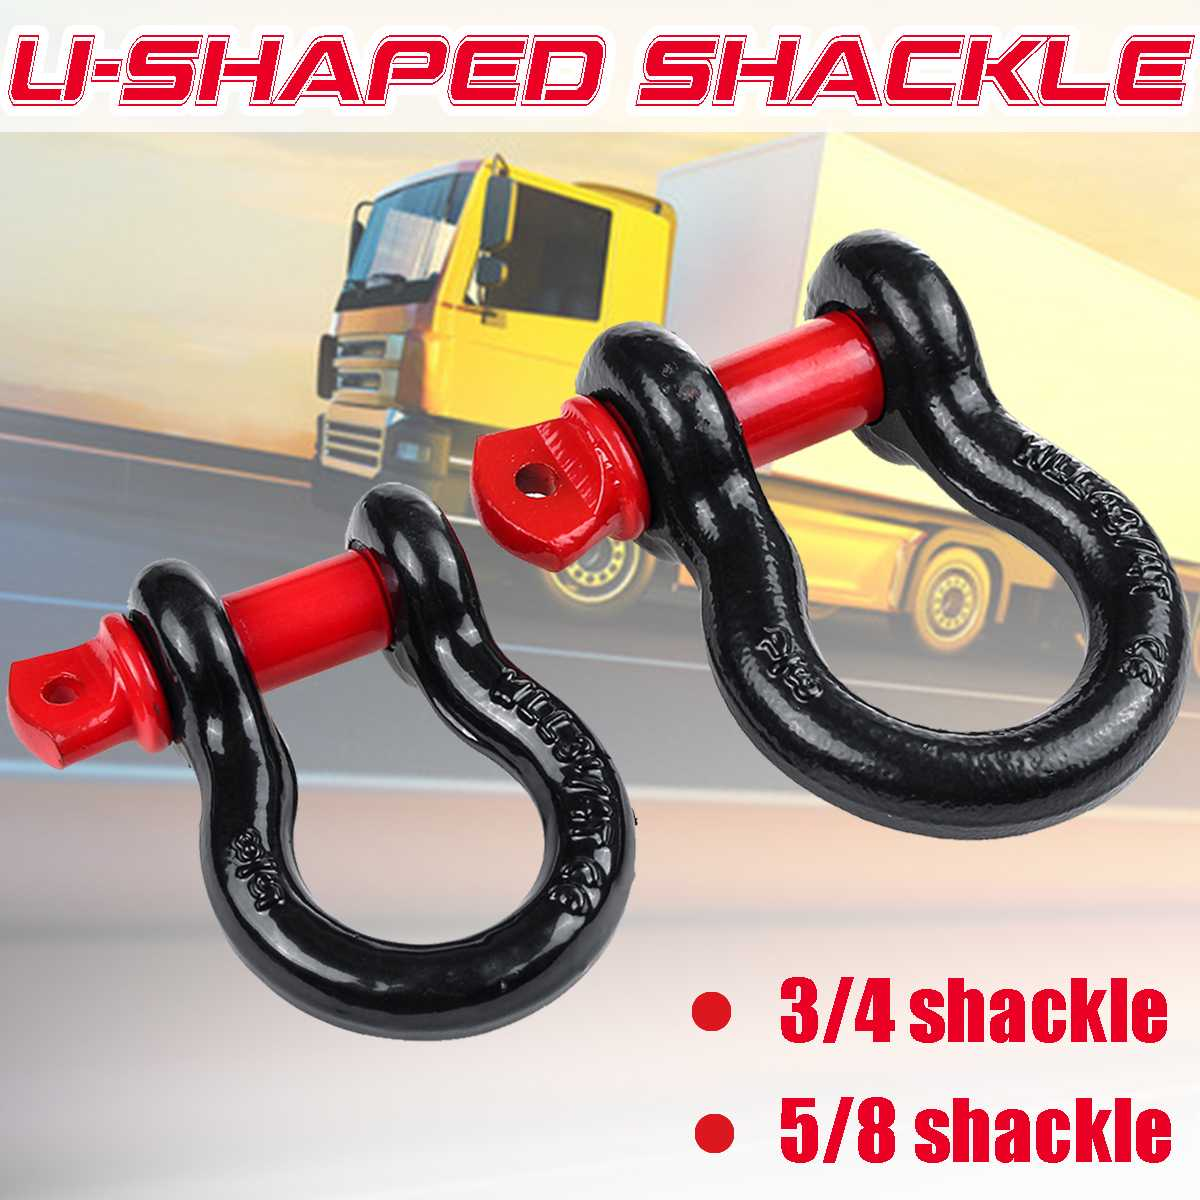 Trailer-Hook Shackles Heavy-Duty D-Ring Towing-Car Recovery for Vehicle 3/4-5/8 Universal title=